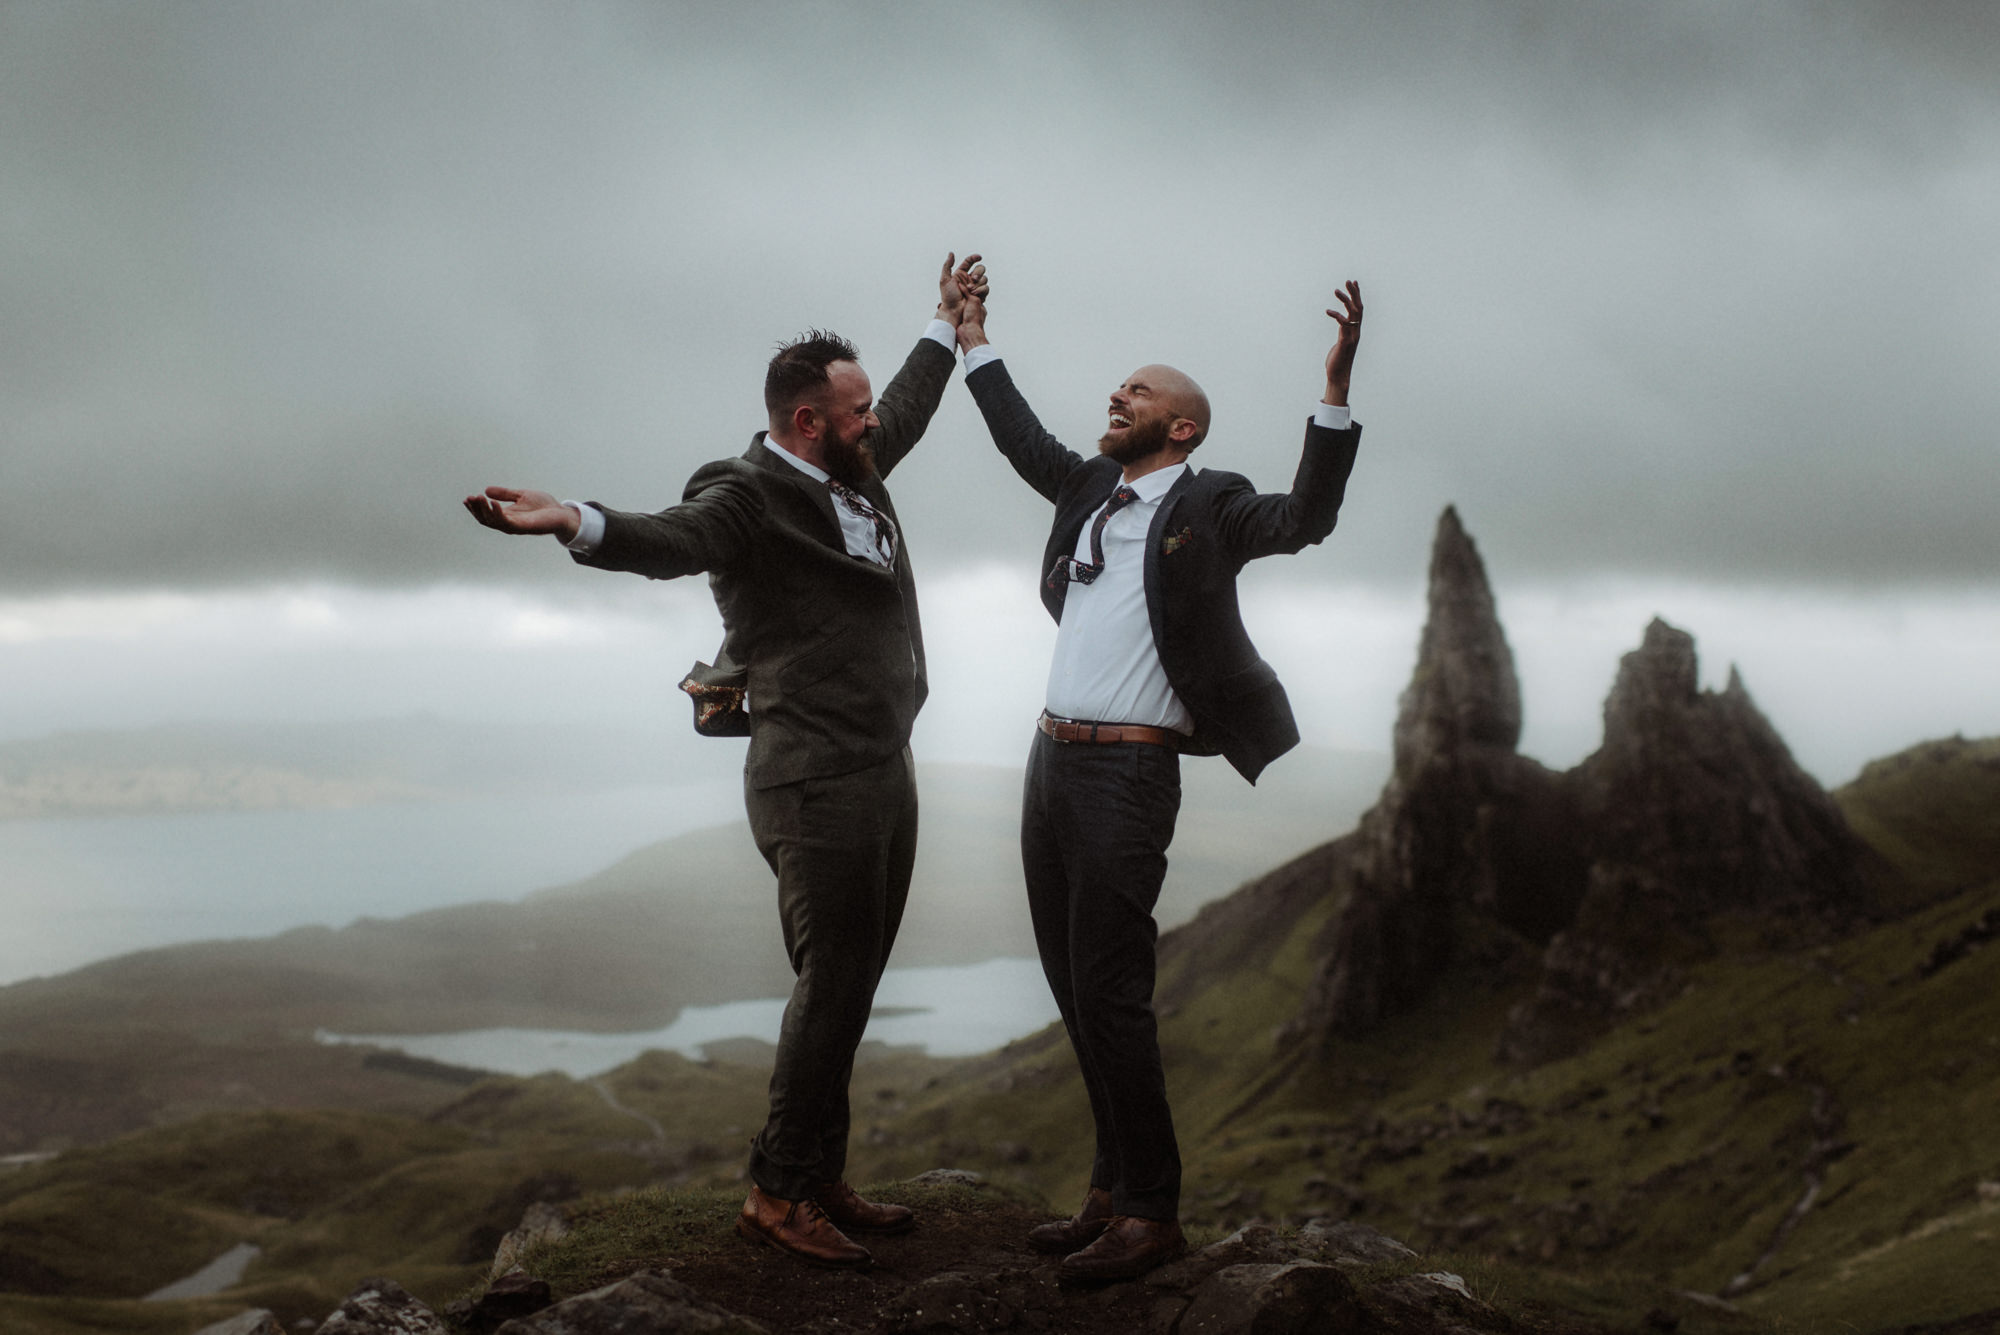 Grooms celebrating on mountain above the moors by The Kitcheners